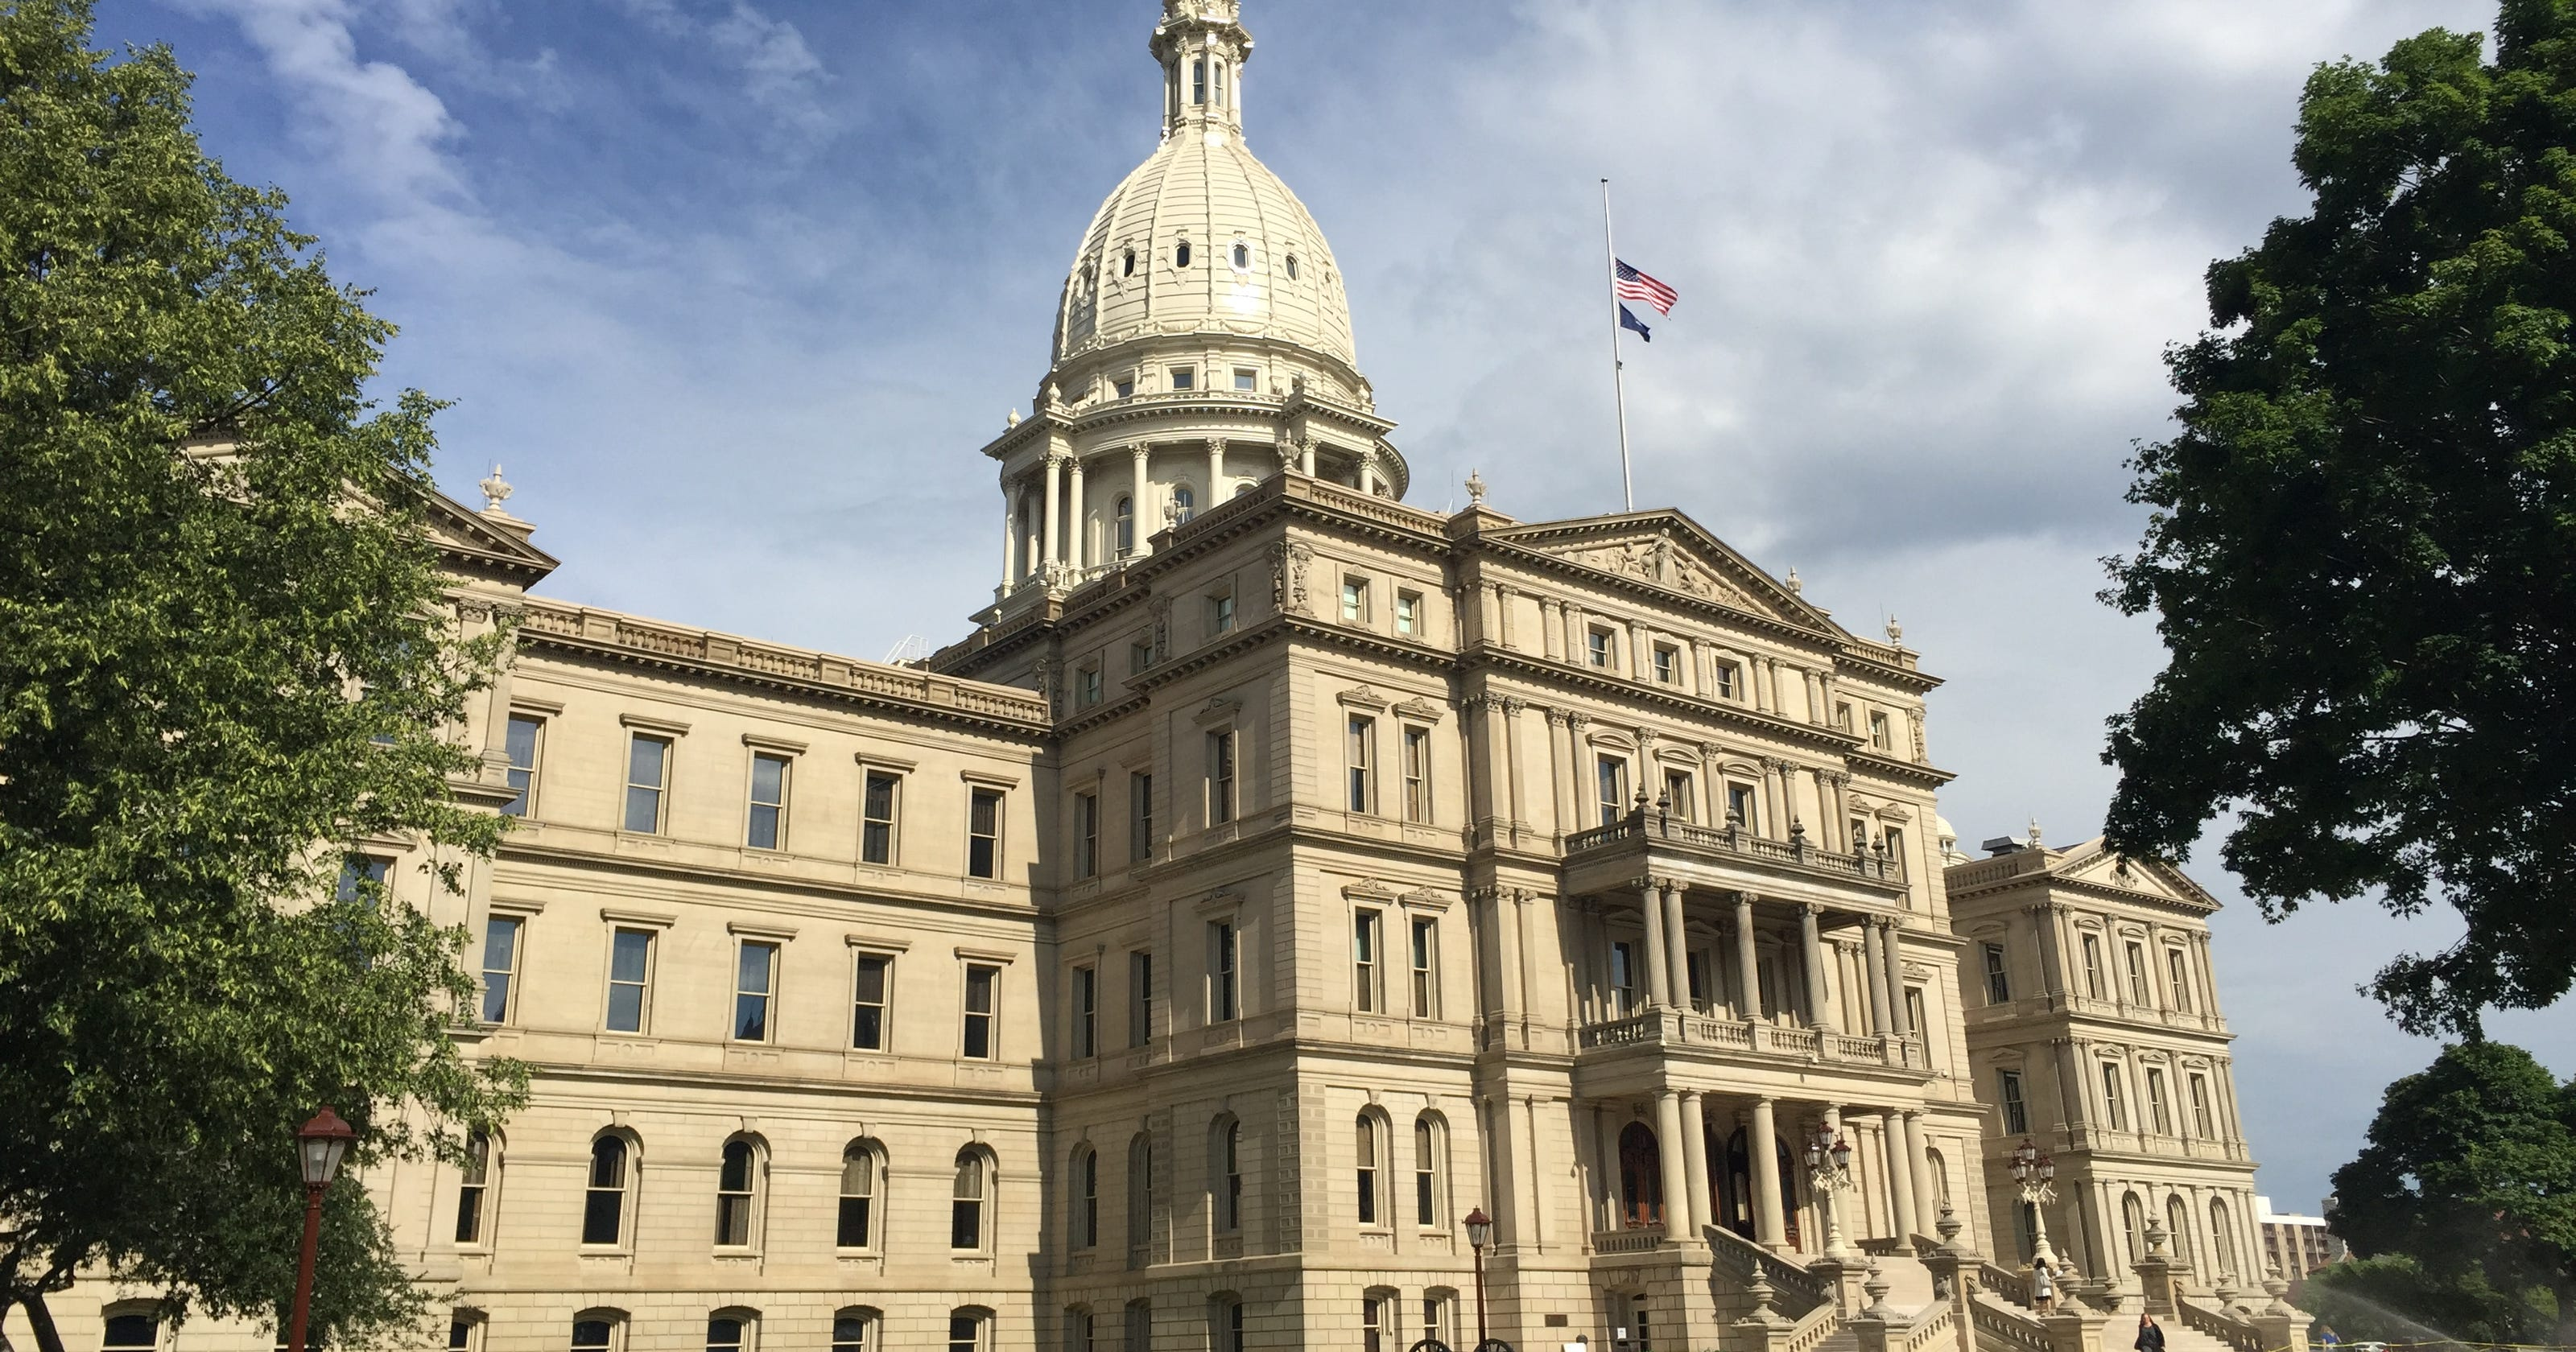 Guns rights groups aim to block Whitmer's appointment to Natural Resources Commission